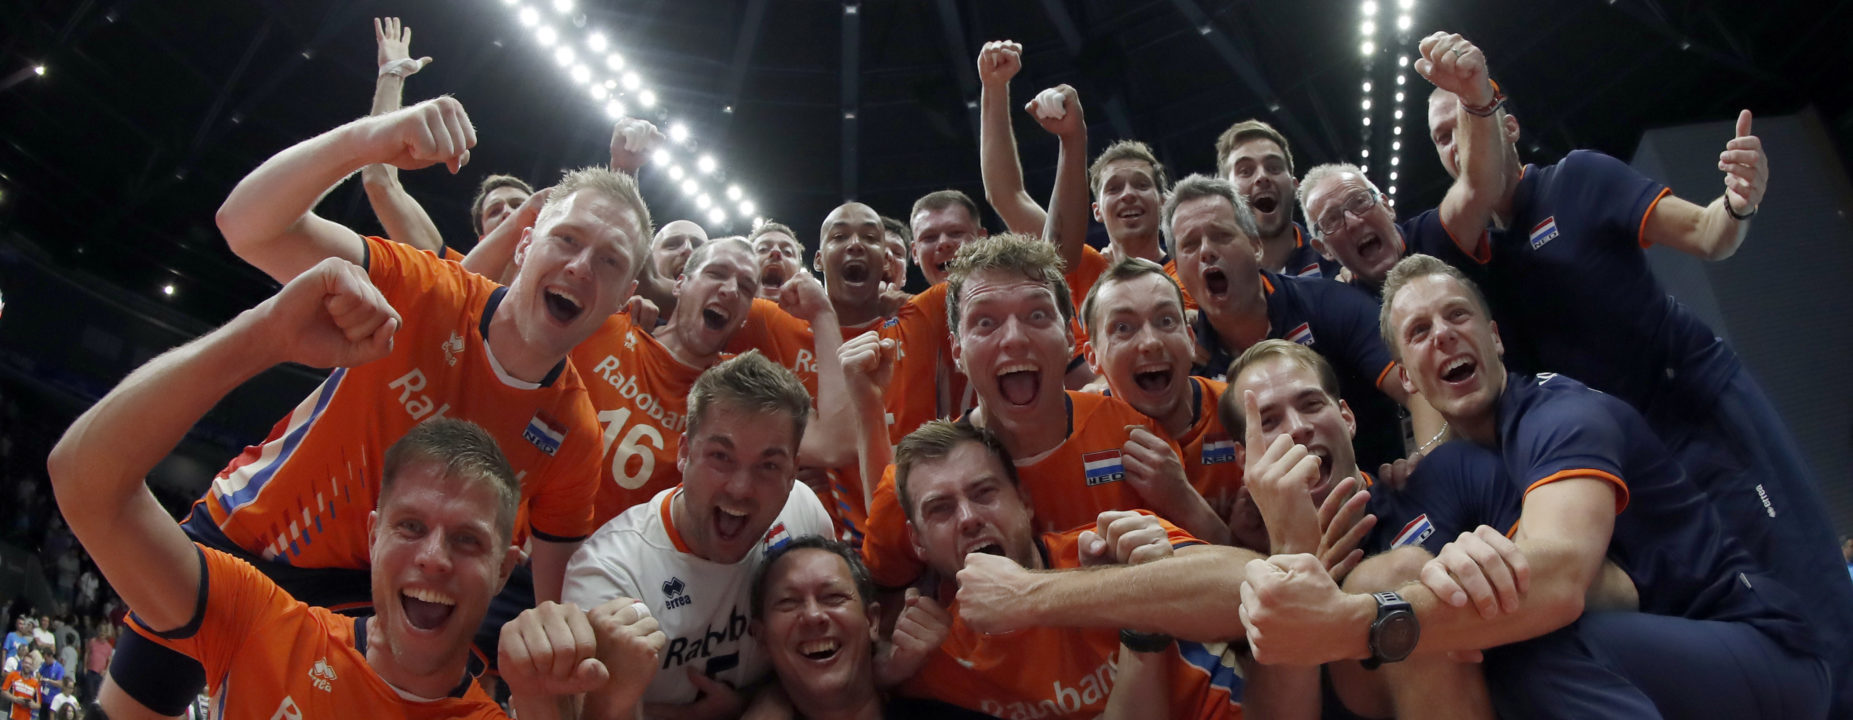 The Dutch Men Are Shocking the World Championships Field with Upsets